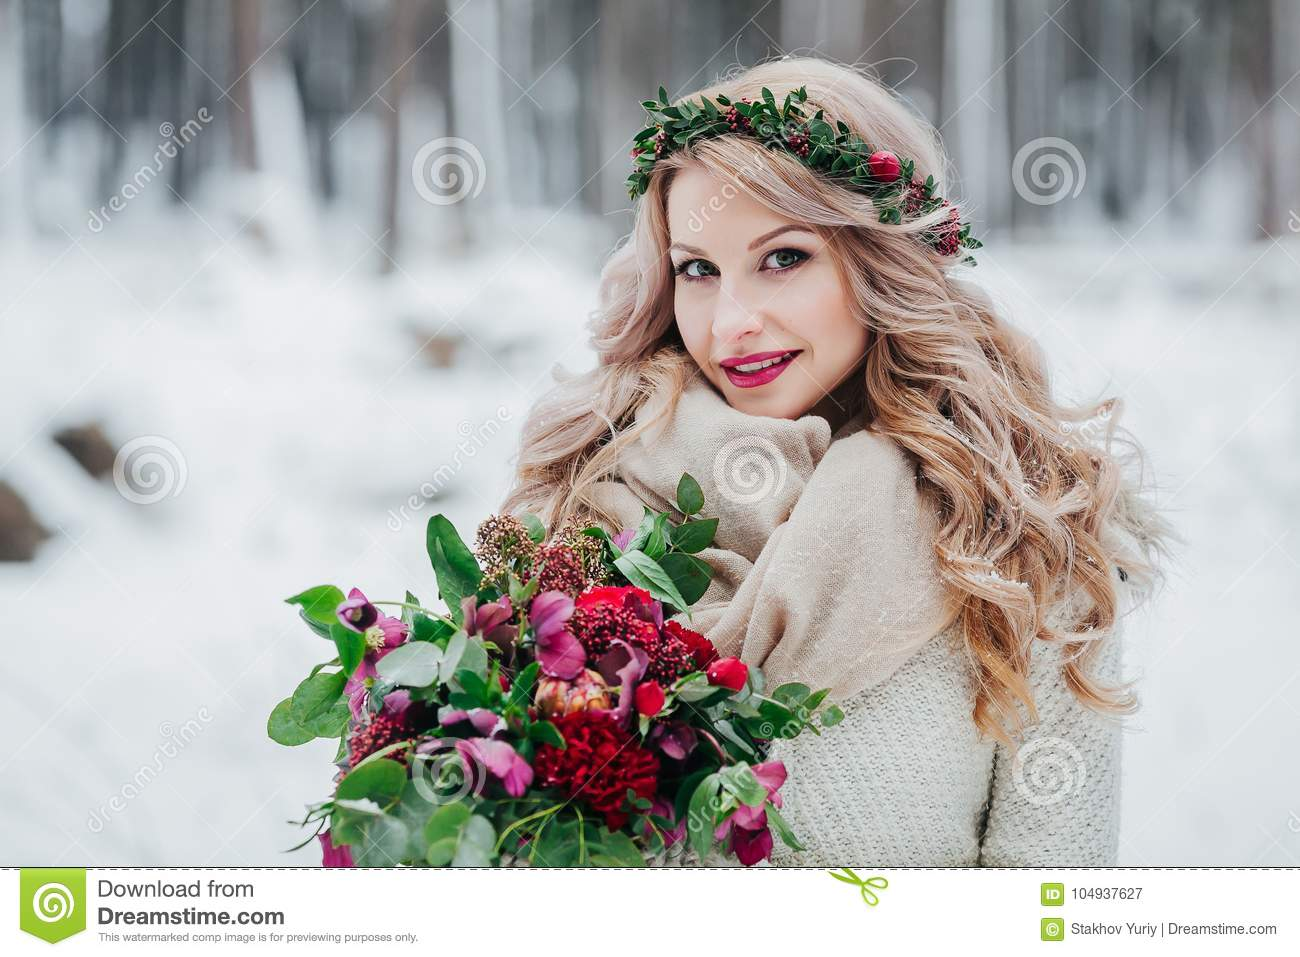 https://thumbs.dreamstime.com/z/young-girl-slavic-appearance-wreath-wildflowers-beautiful-blonde-bride-holds-bouquet-winter-background-artwork-104937627.jpg